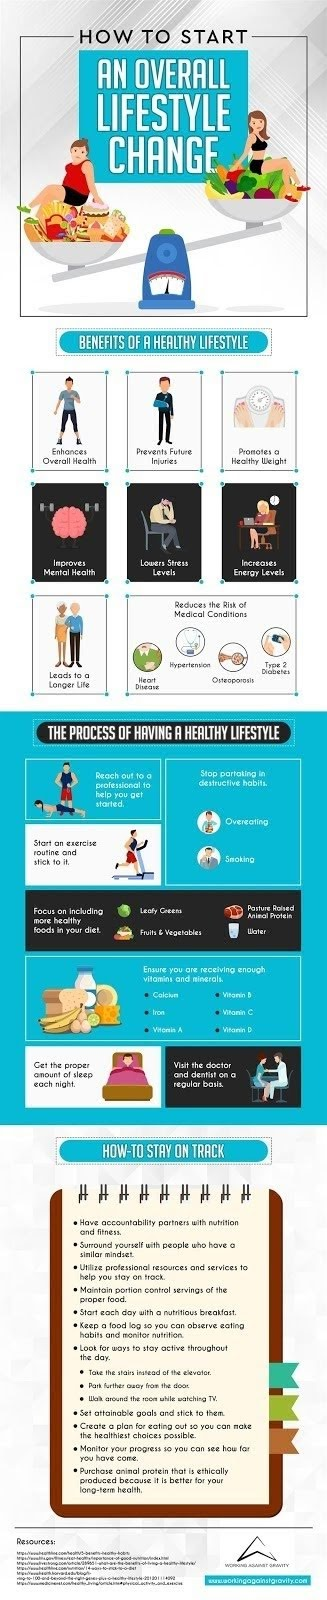 How to Start an Overall Lifestyle Change #infographic